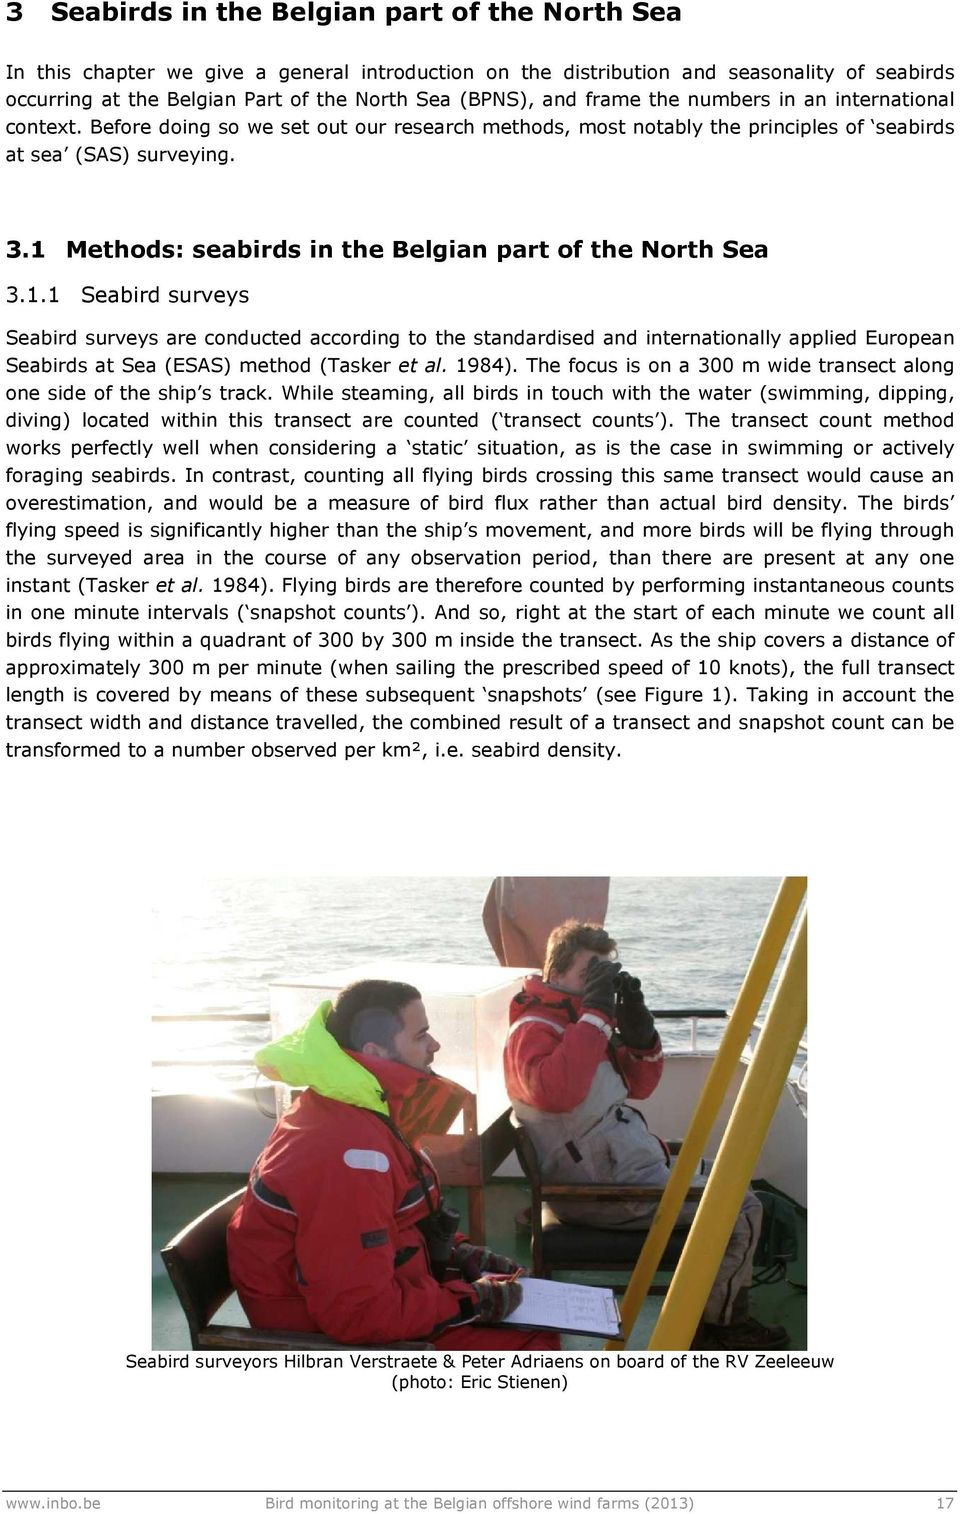 1 Methods: seabirds in the Belgian part of the North Sea 3.1.1 Seabird surveys Seabird surveys are conducted according to the standardised and internationally applied European Seabirds at Sea ESAS) method Tasker et al.